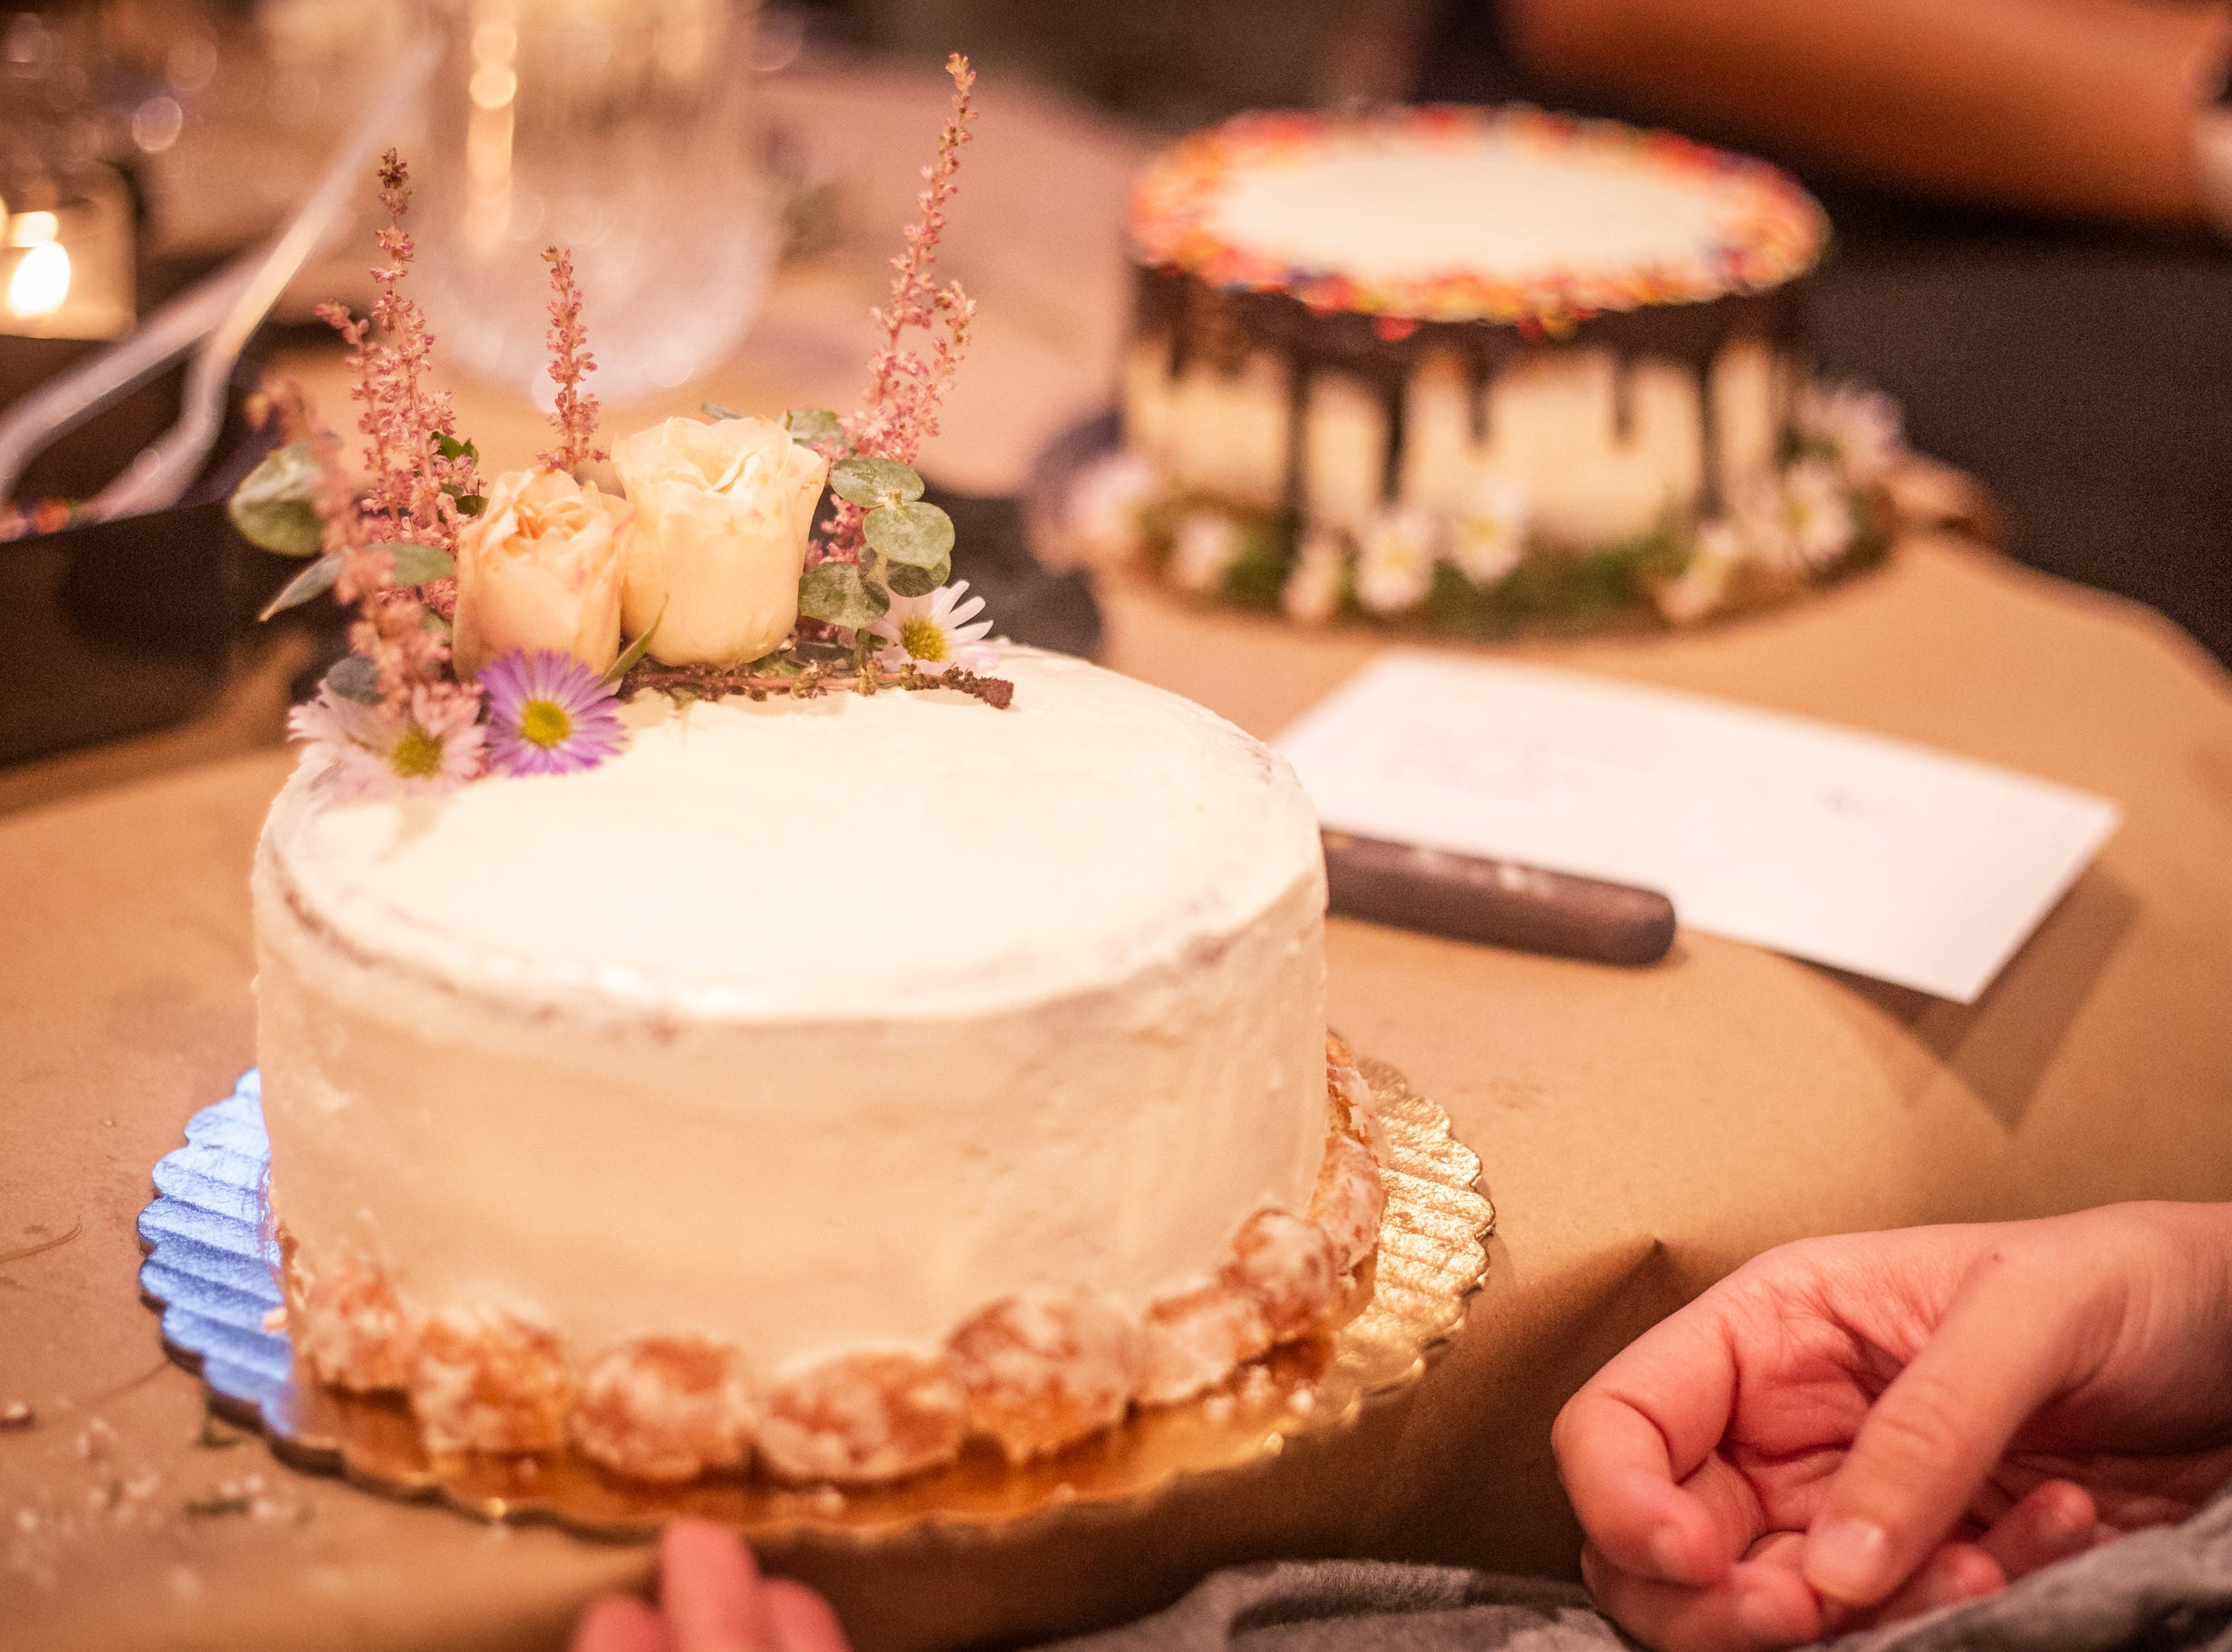 For only $25, members of the Tallahassee community were invited to SoDough after hours on Thursday, September 27, 2018, to assemble and decorate cakes with fresh flowers, caramel sauce, sprinkles and even donut holes. This class was the first of four SoDough will host as part of their Autumn Baking Series. Tallahassee, FL.